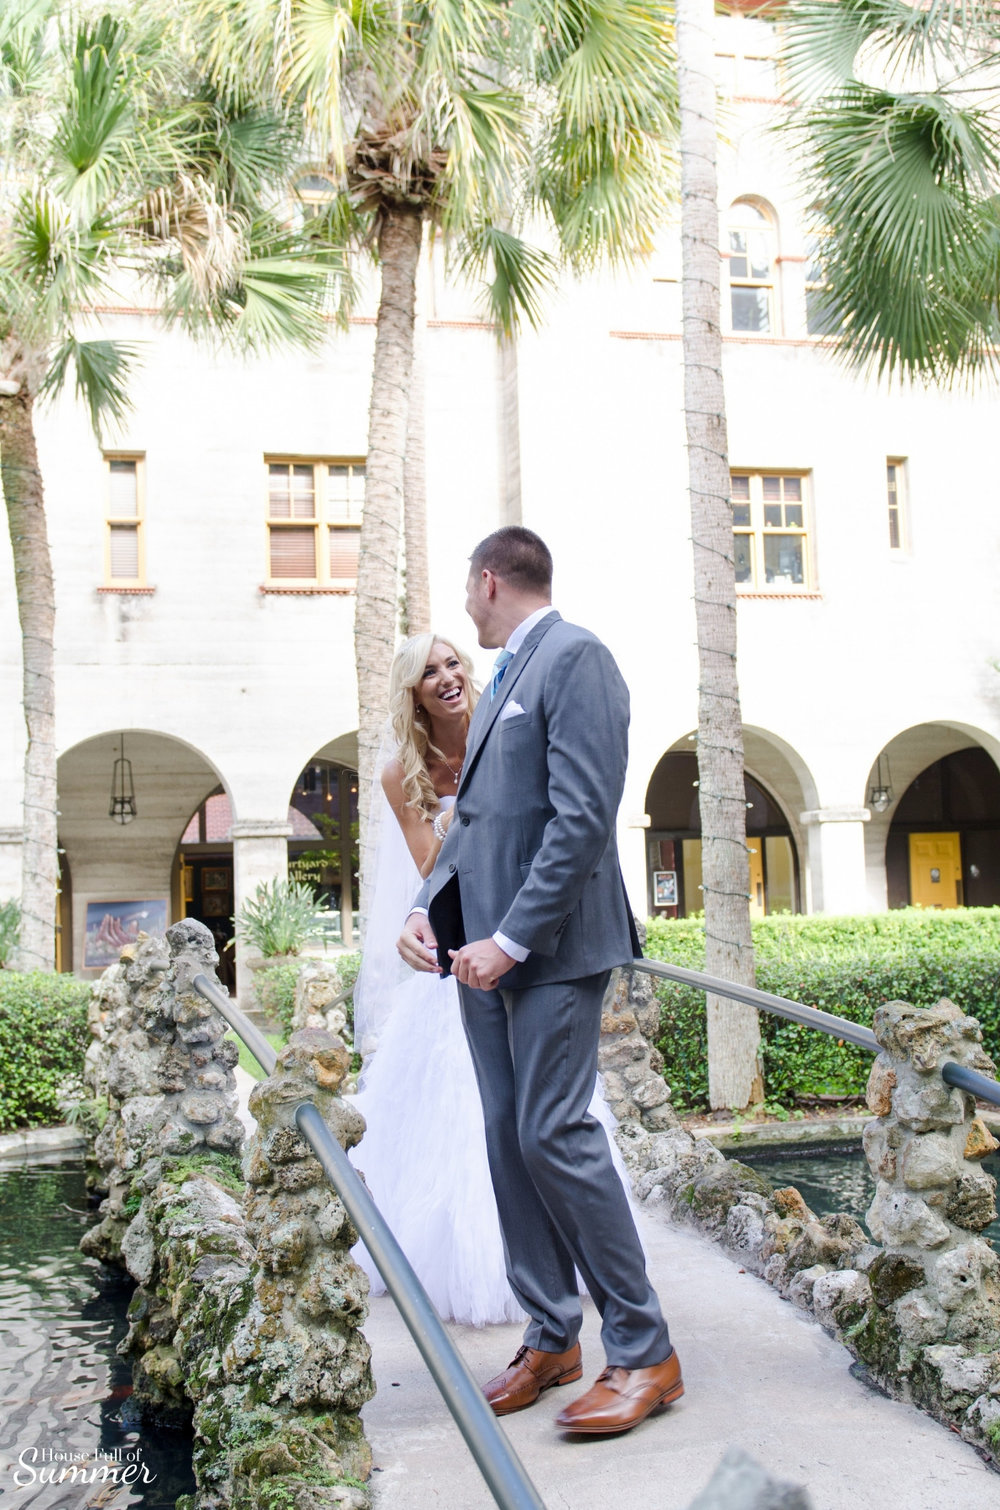 Why I Chose to Have a First Look on Our Wedding Day | House Full of Summer - wedding day ideas, first look photography ideas, first look with the groom, Florida wedding, St. Augustine, Lightner Museum, wedding dress, botanical garden, mermaid dress, ruffles, veil, palm trees